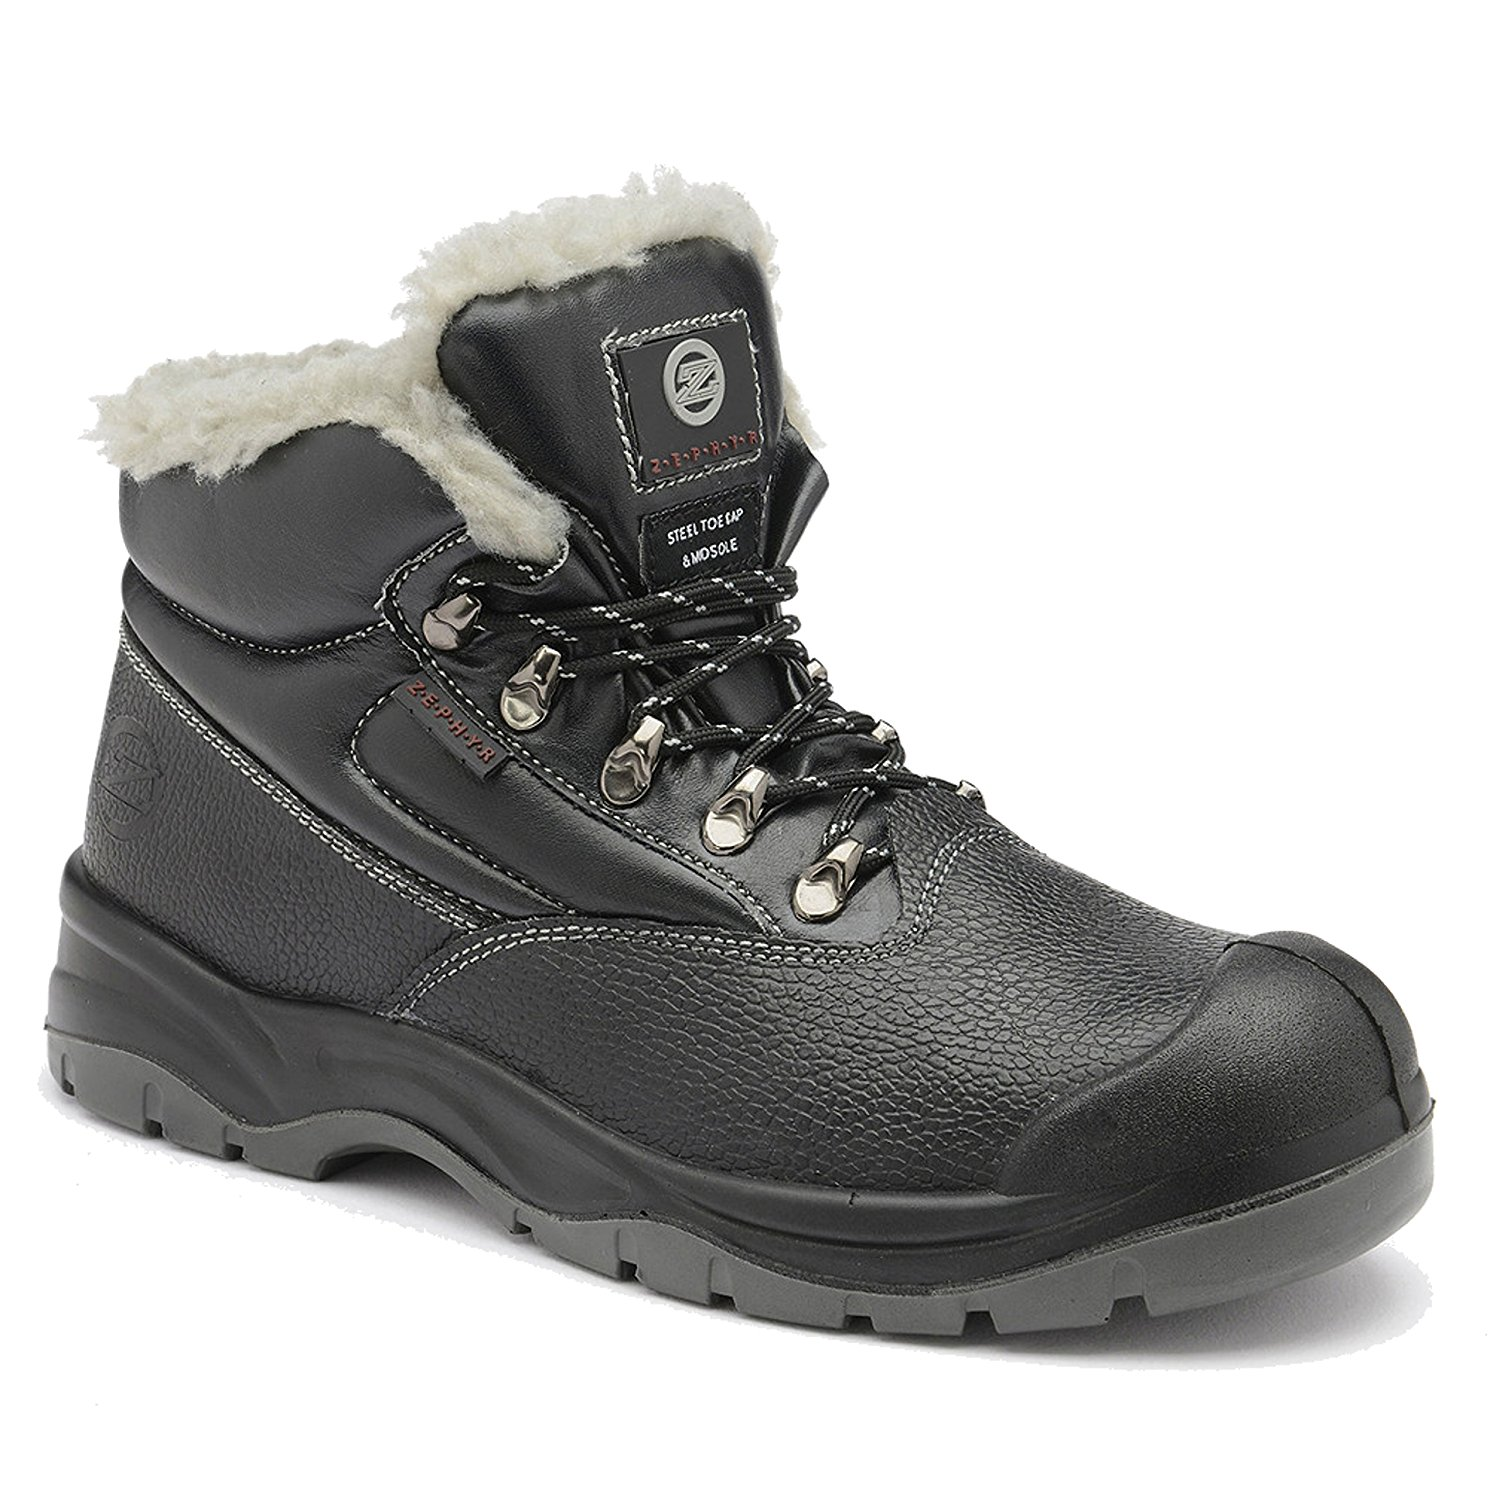 6e068355d8f Cheap Composite Safety Toe Boots, find Composite Safety Toe Boots ...